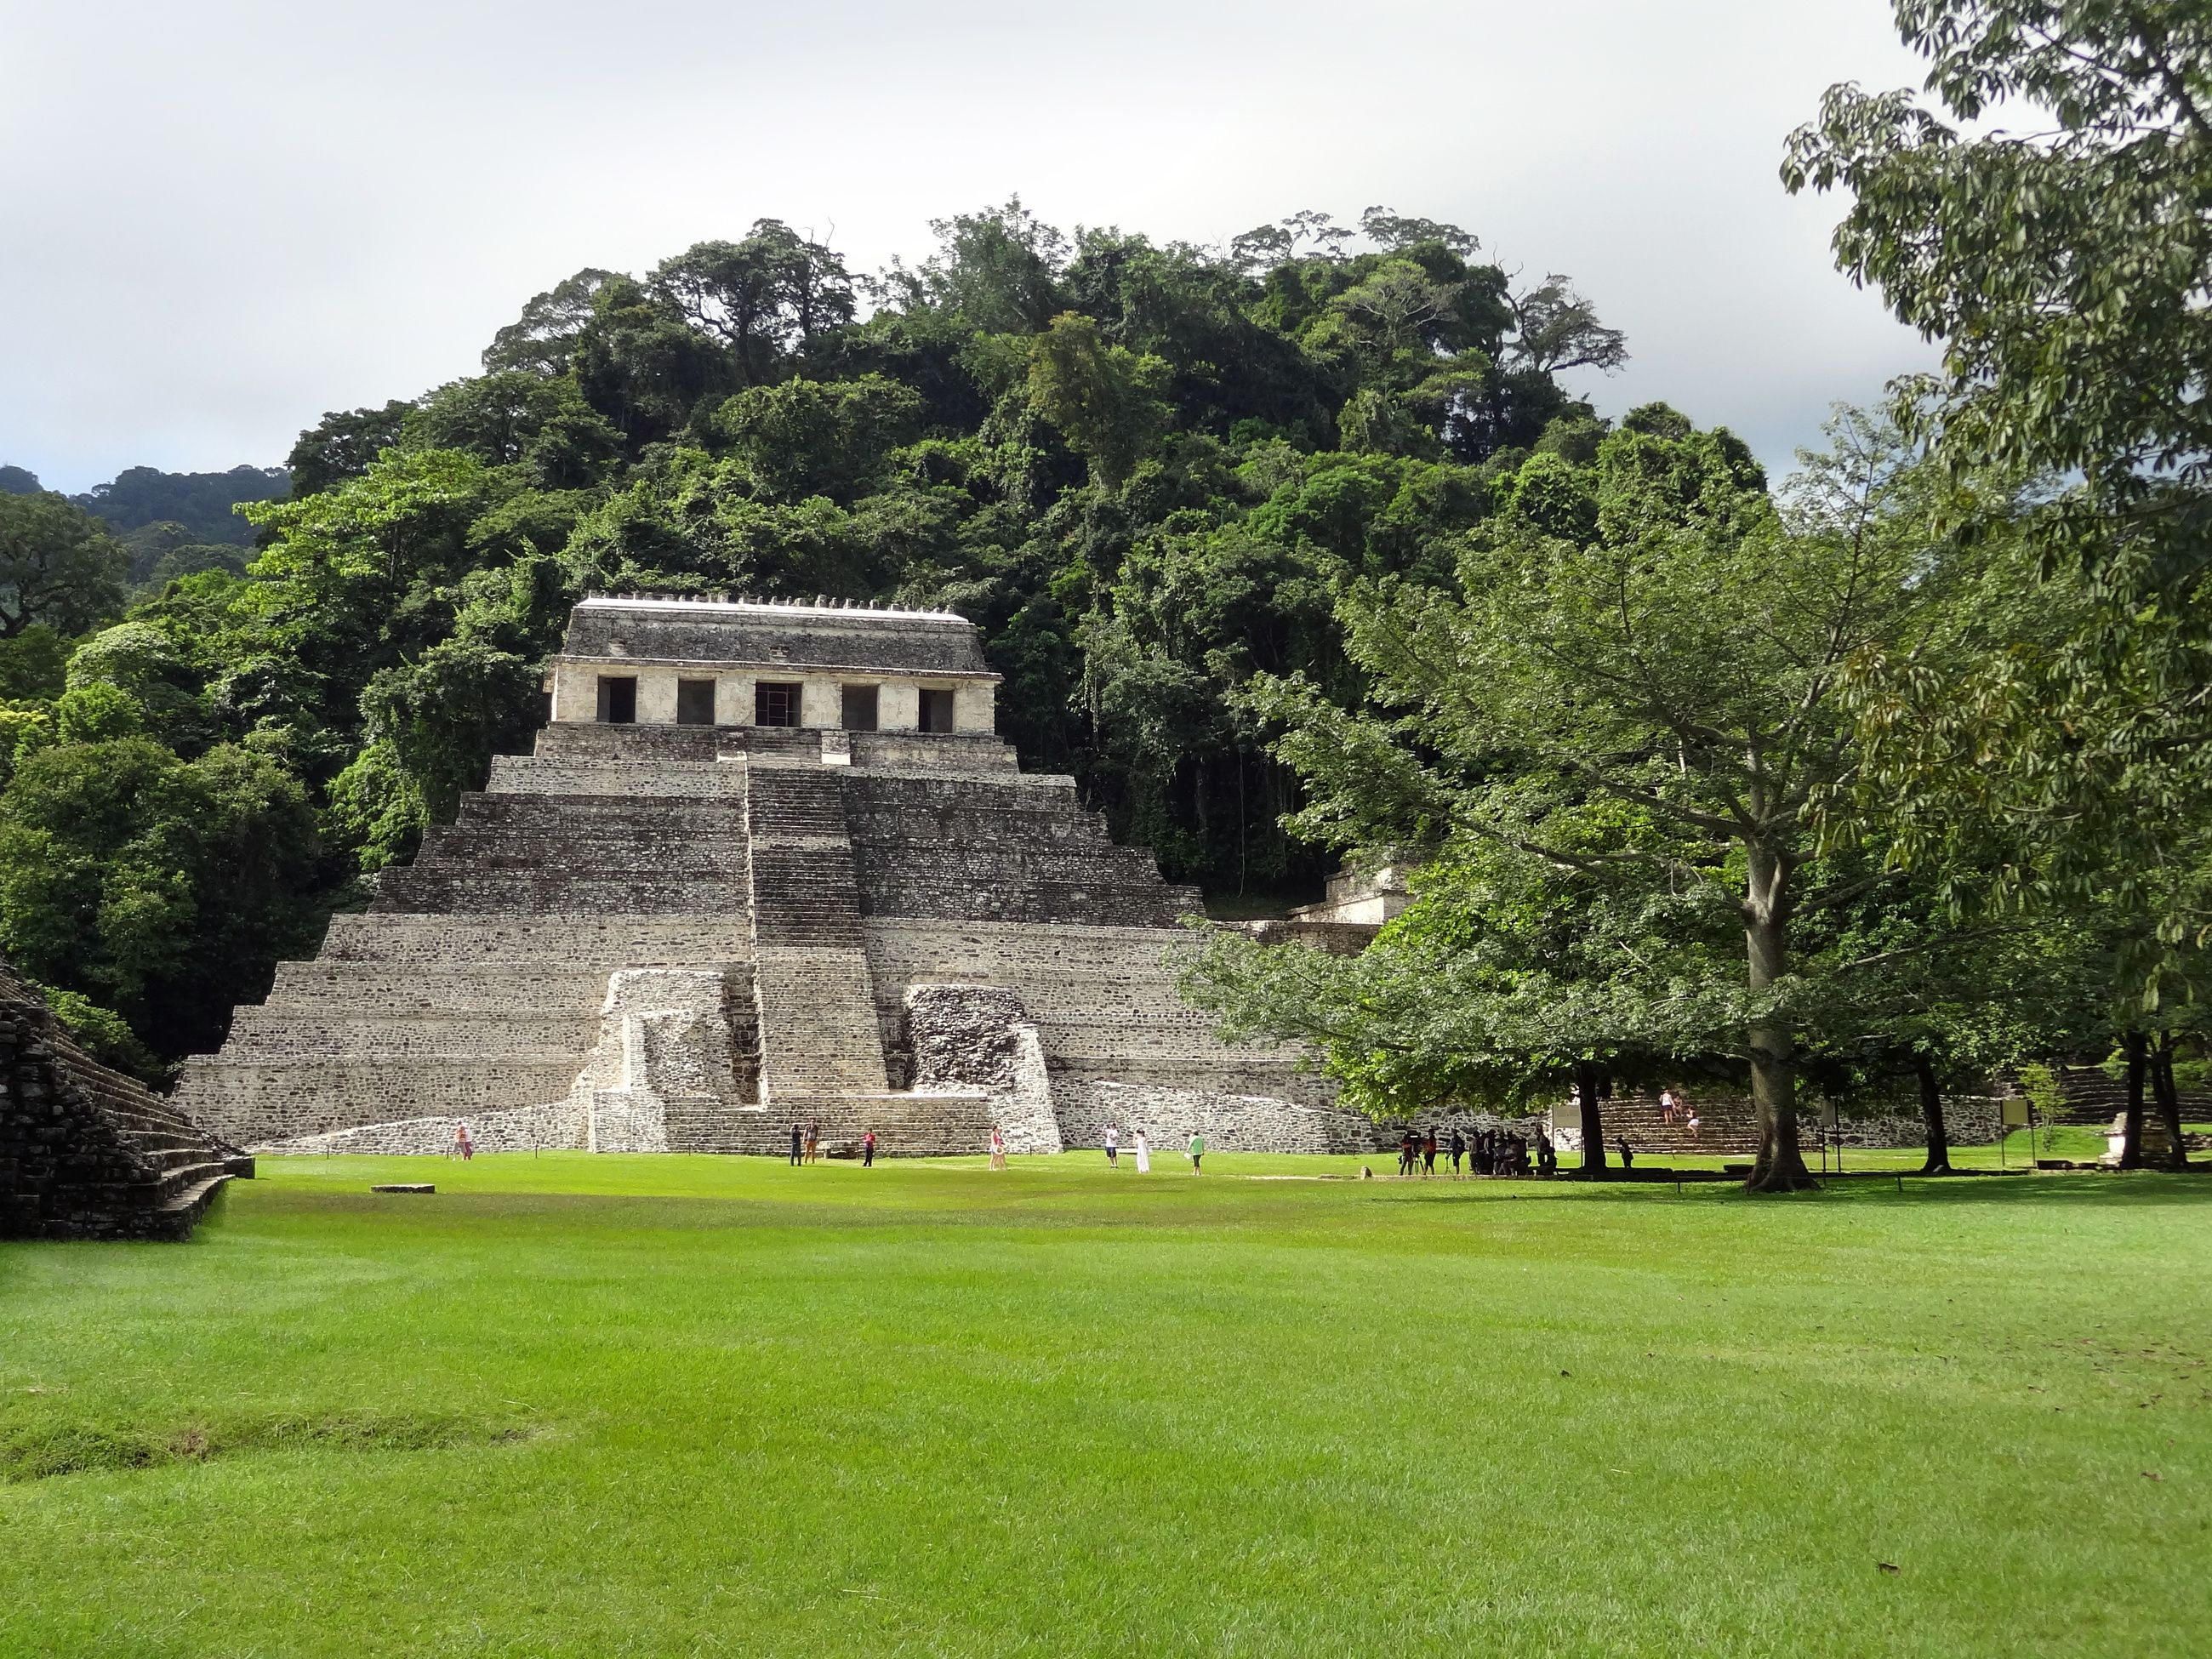 mayan temple ruins at Palenque in Mexico